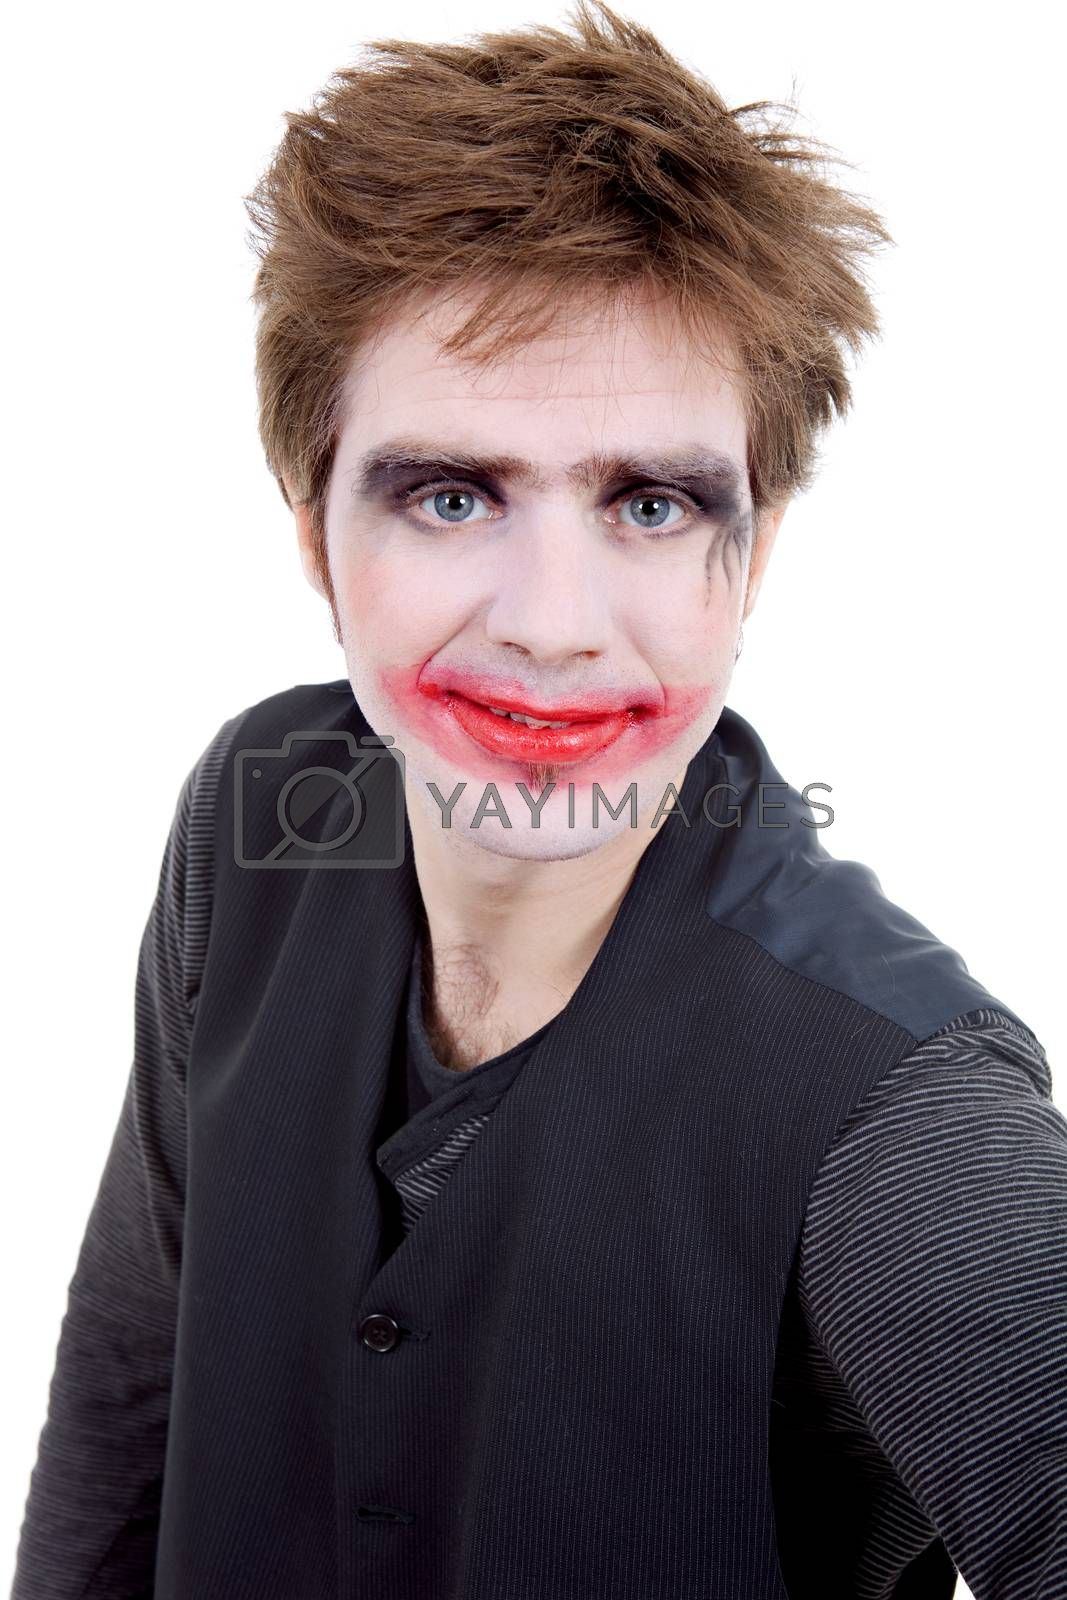 Royalty free image of joker by zittto